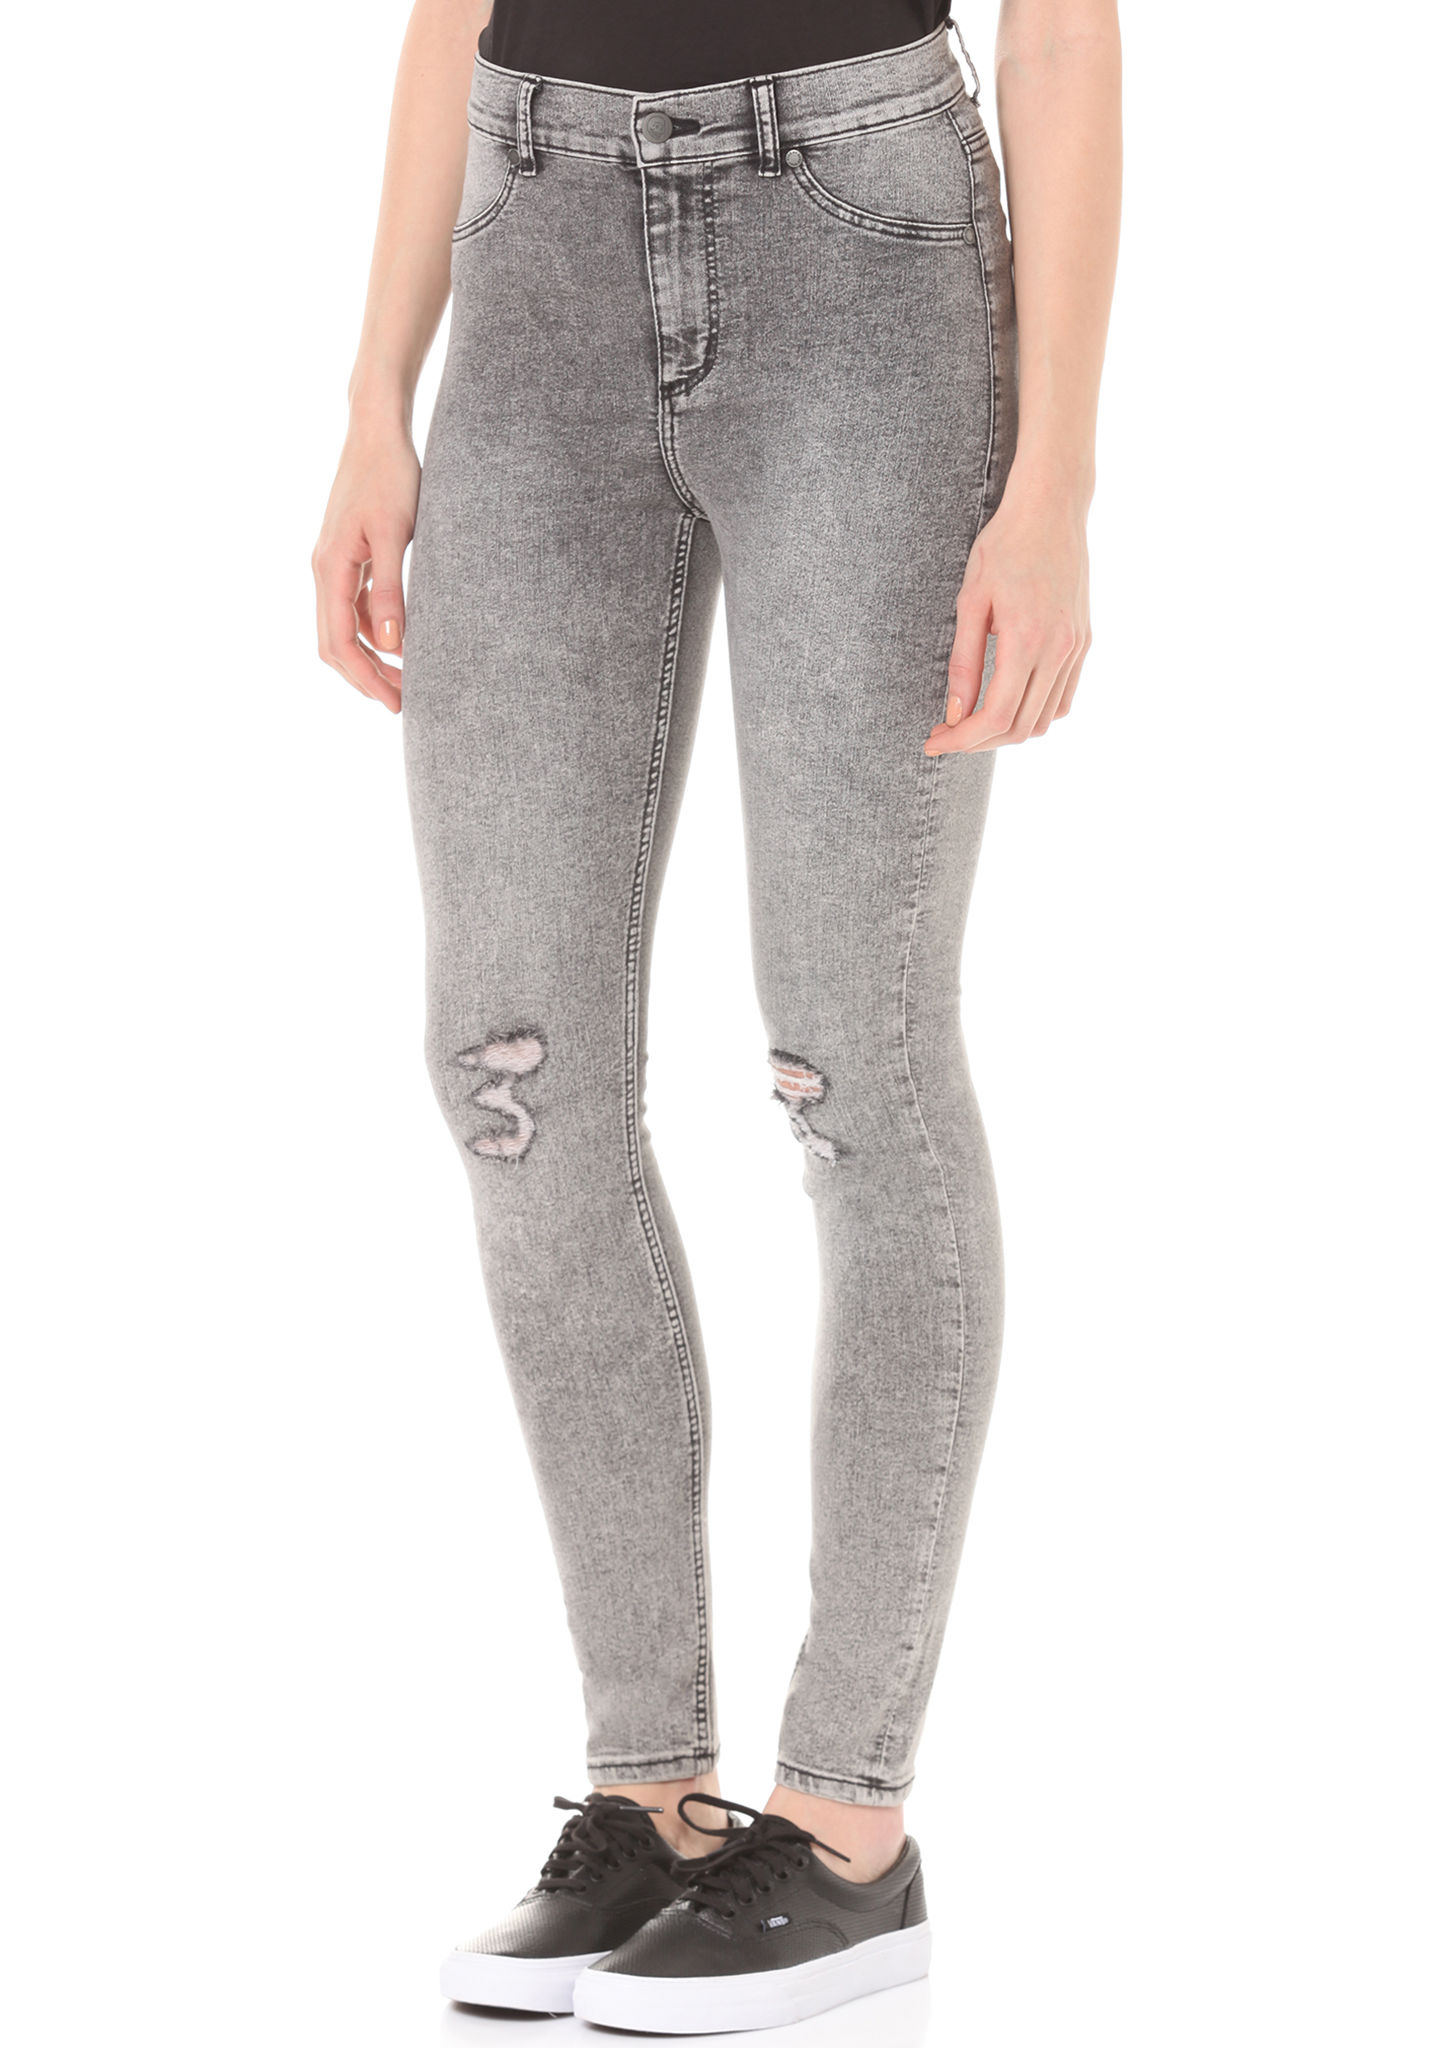 Cheap Monday High Spray - Denim Jeans for Women - Grey - Planet Sports